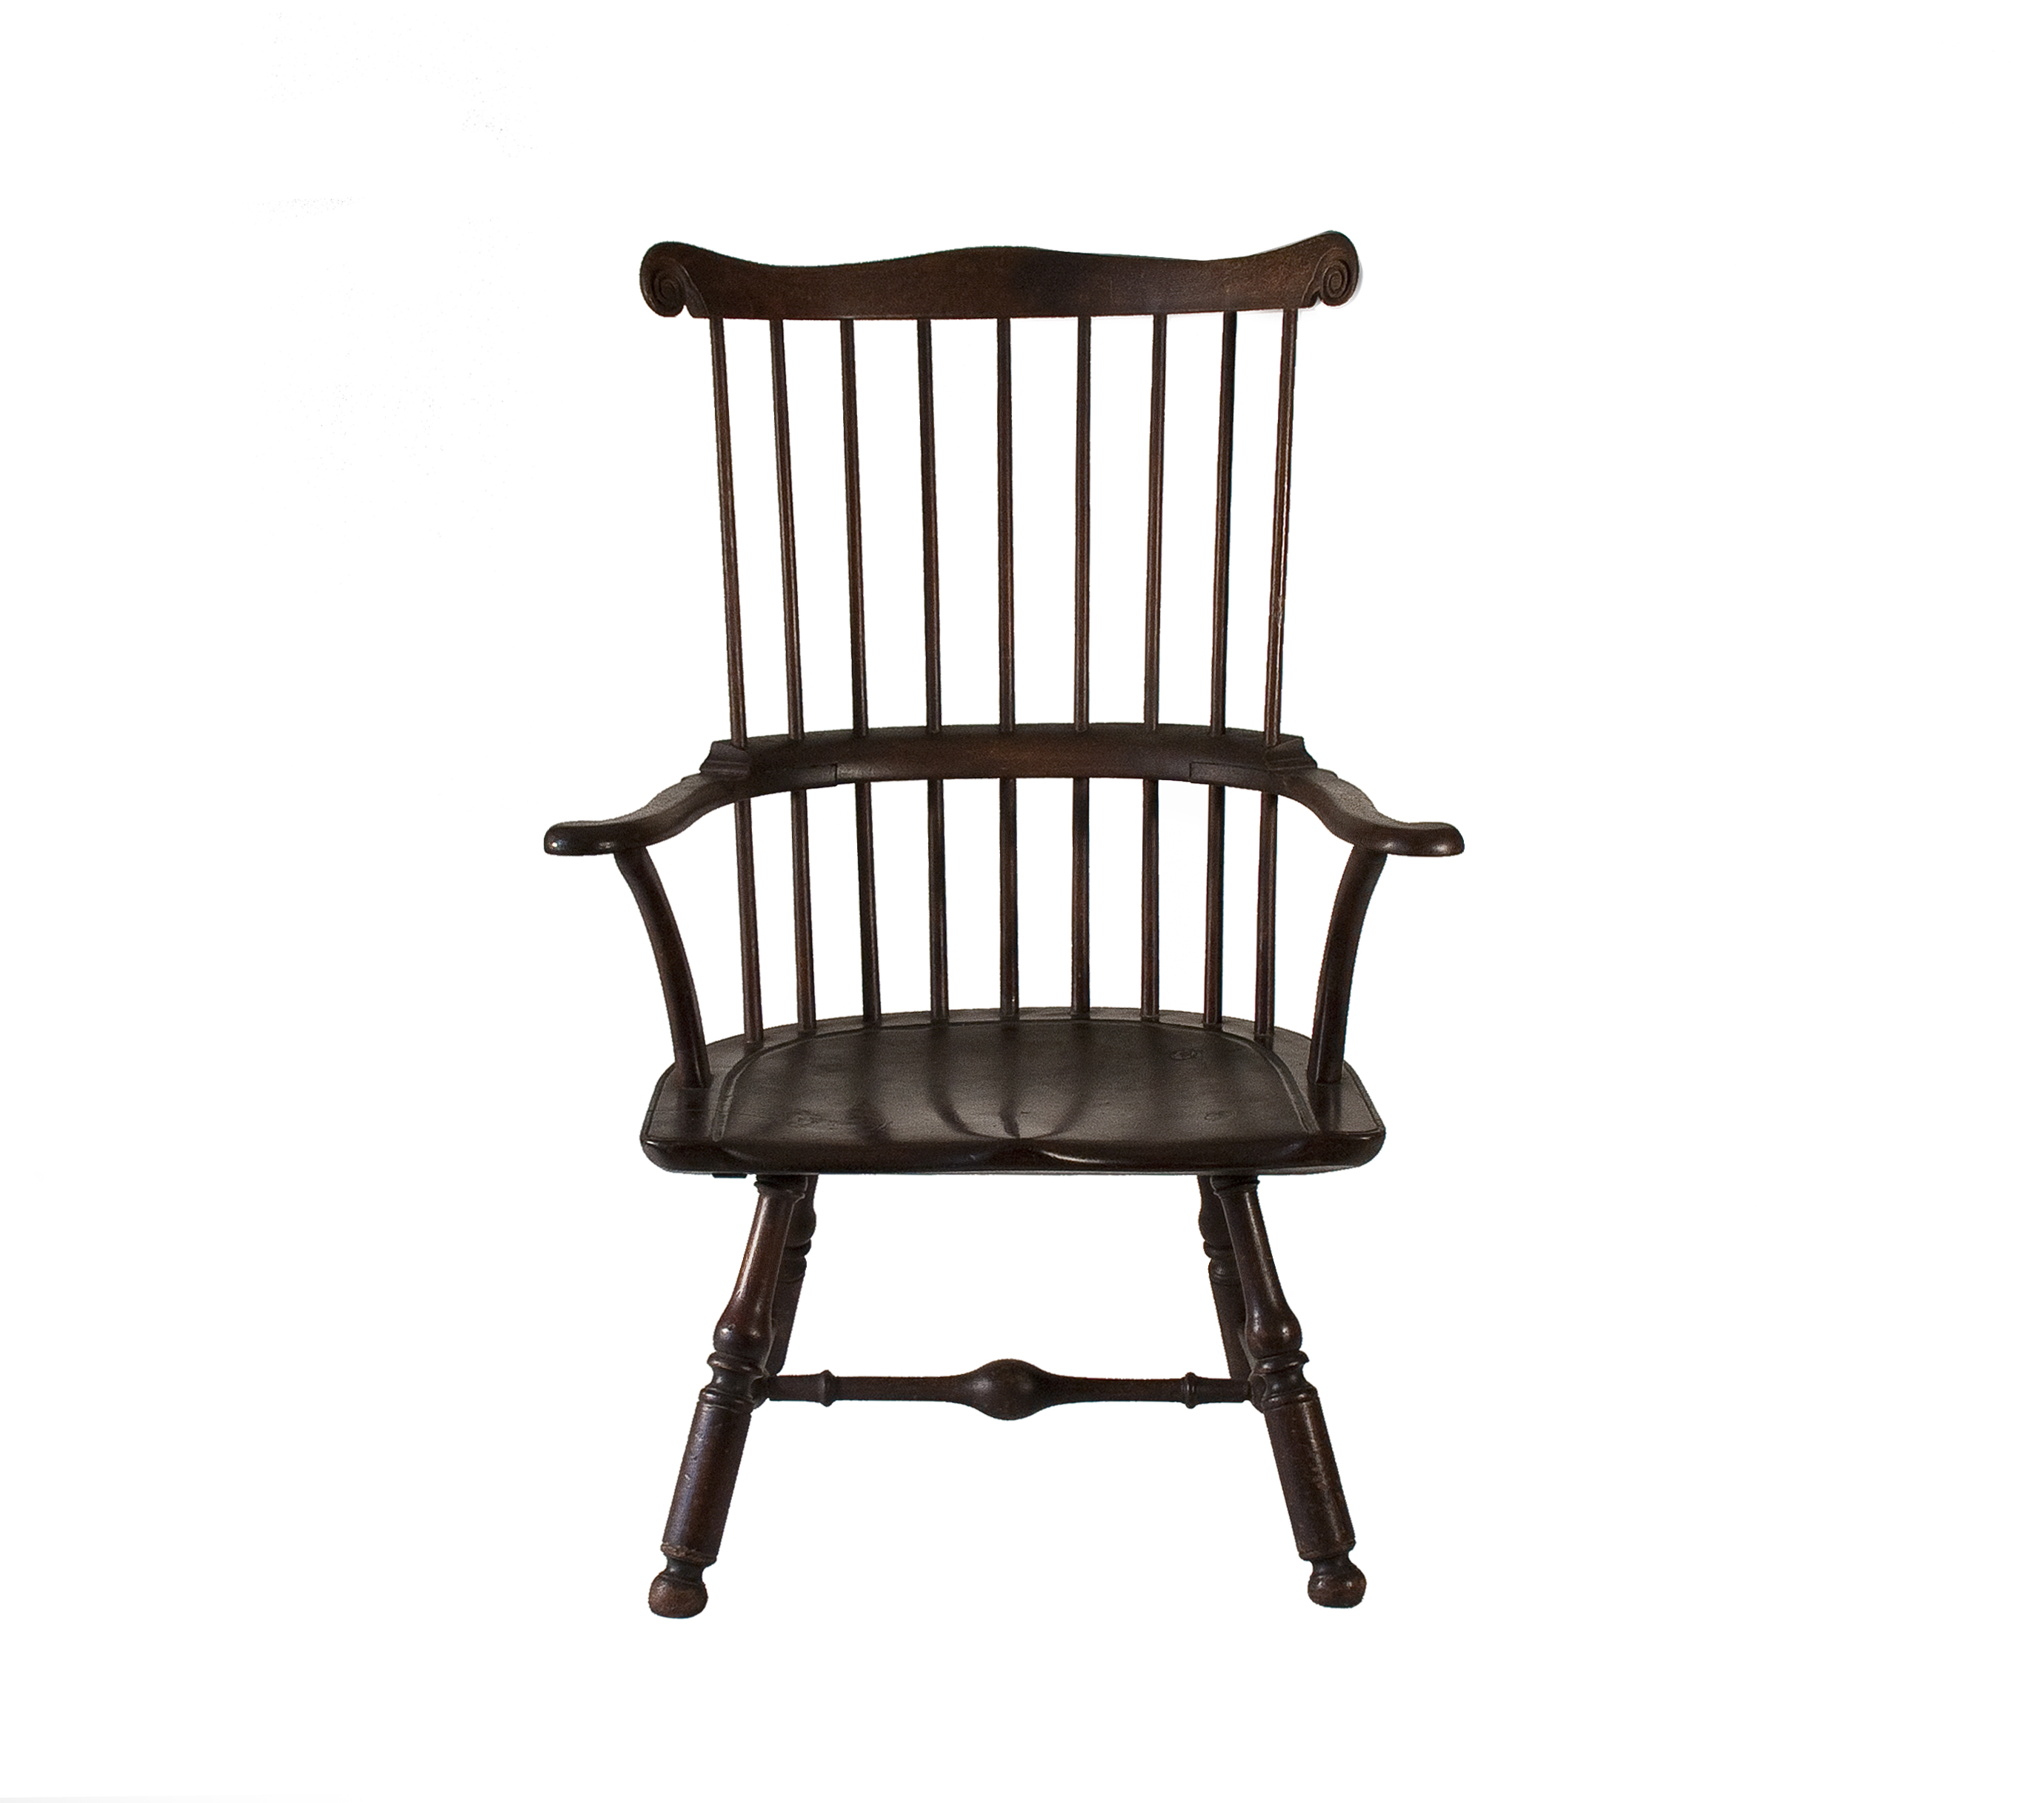 Wooden chair front view - Rare And Impressive Walnut